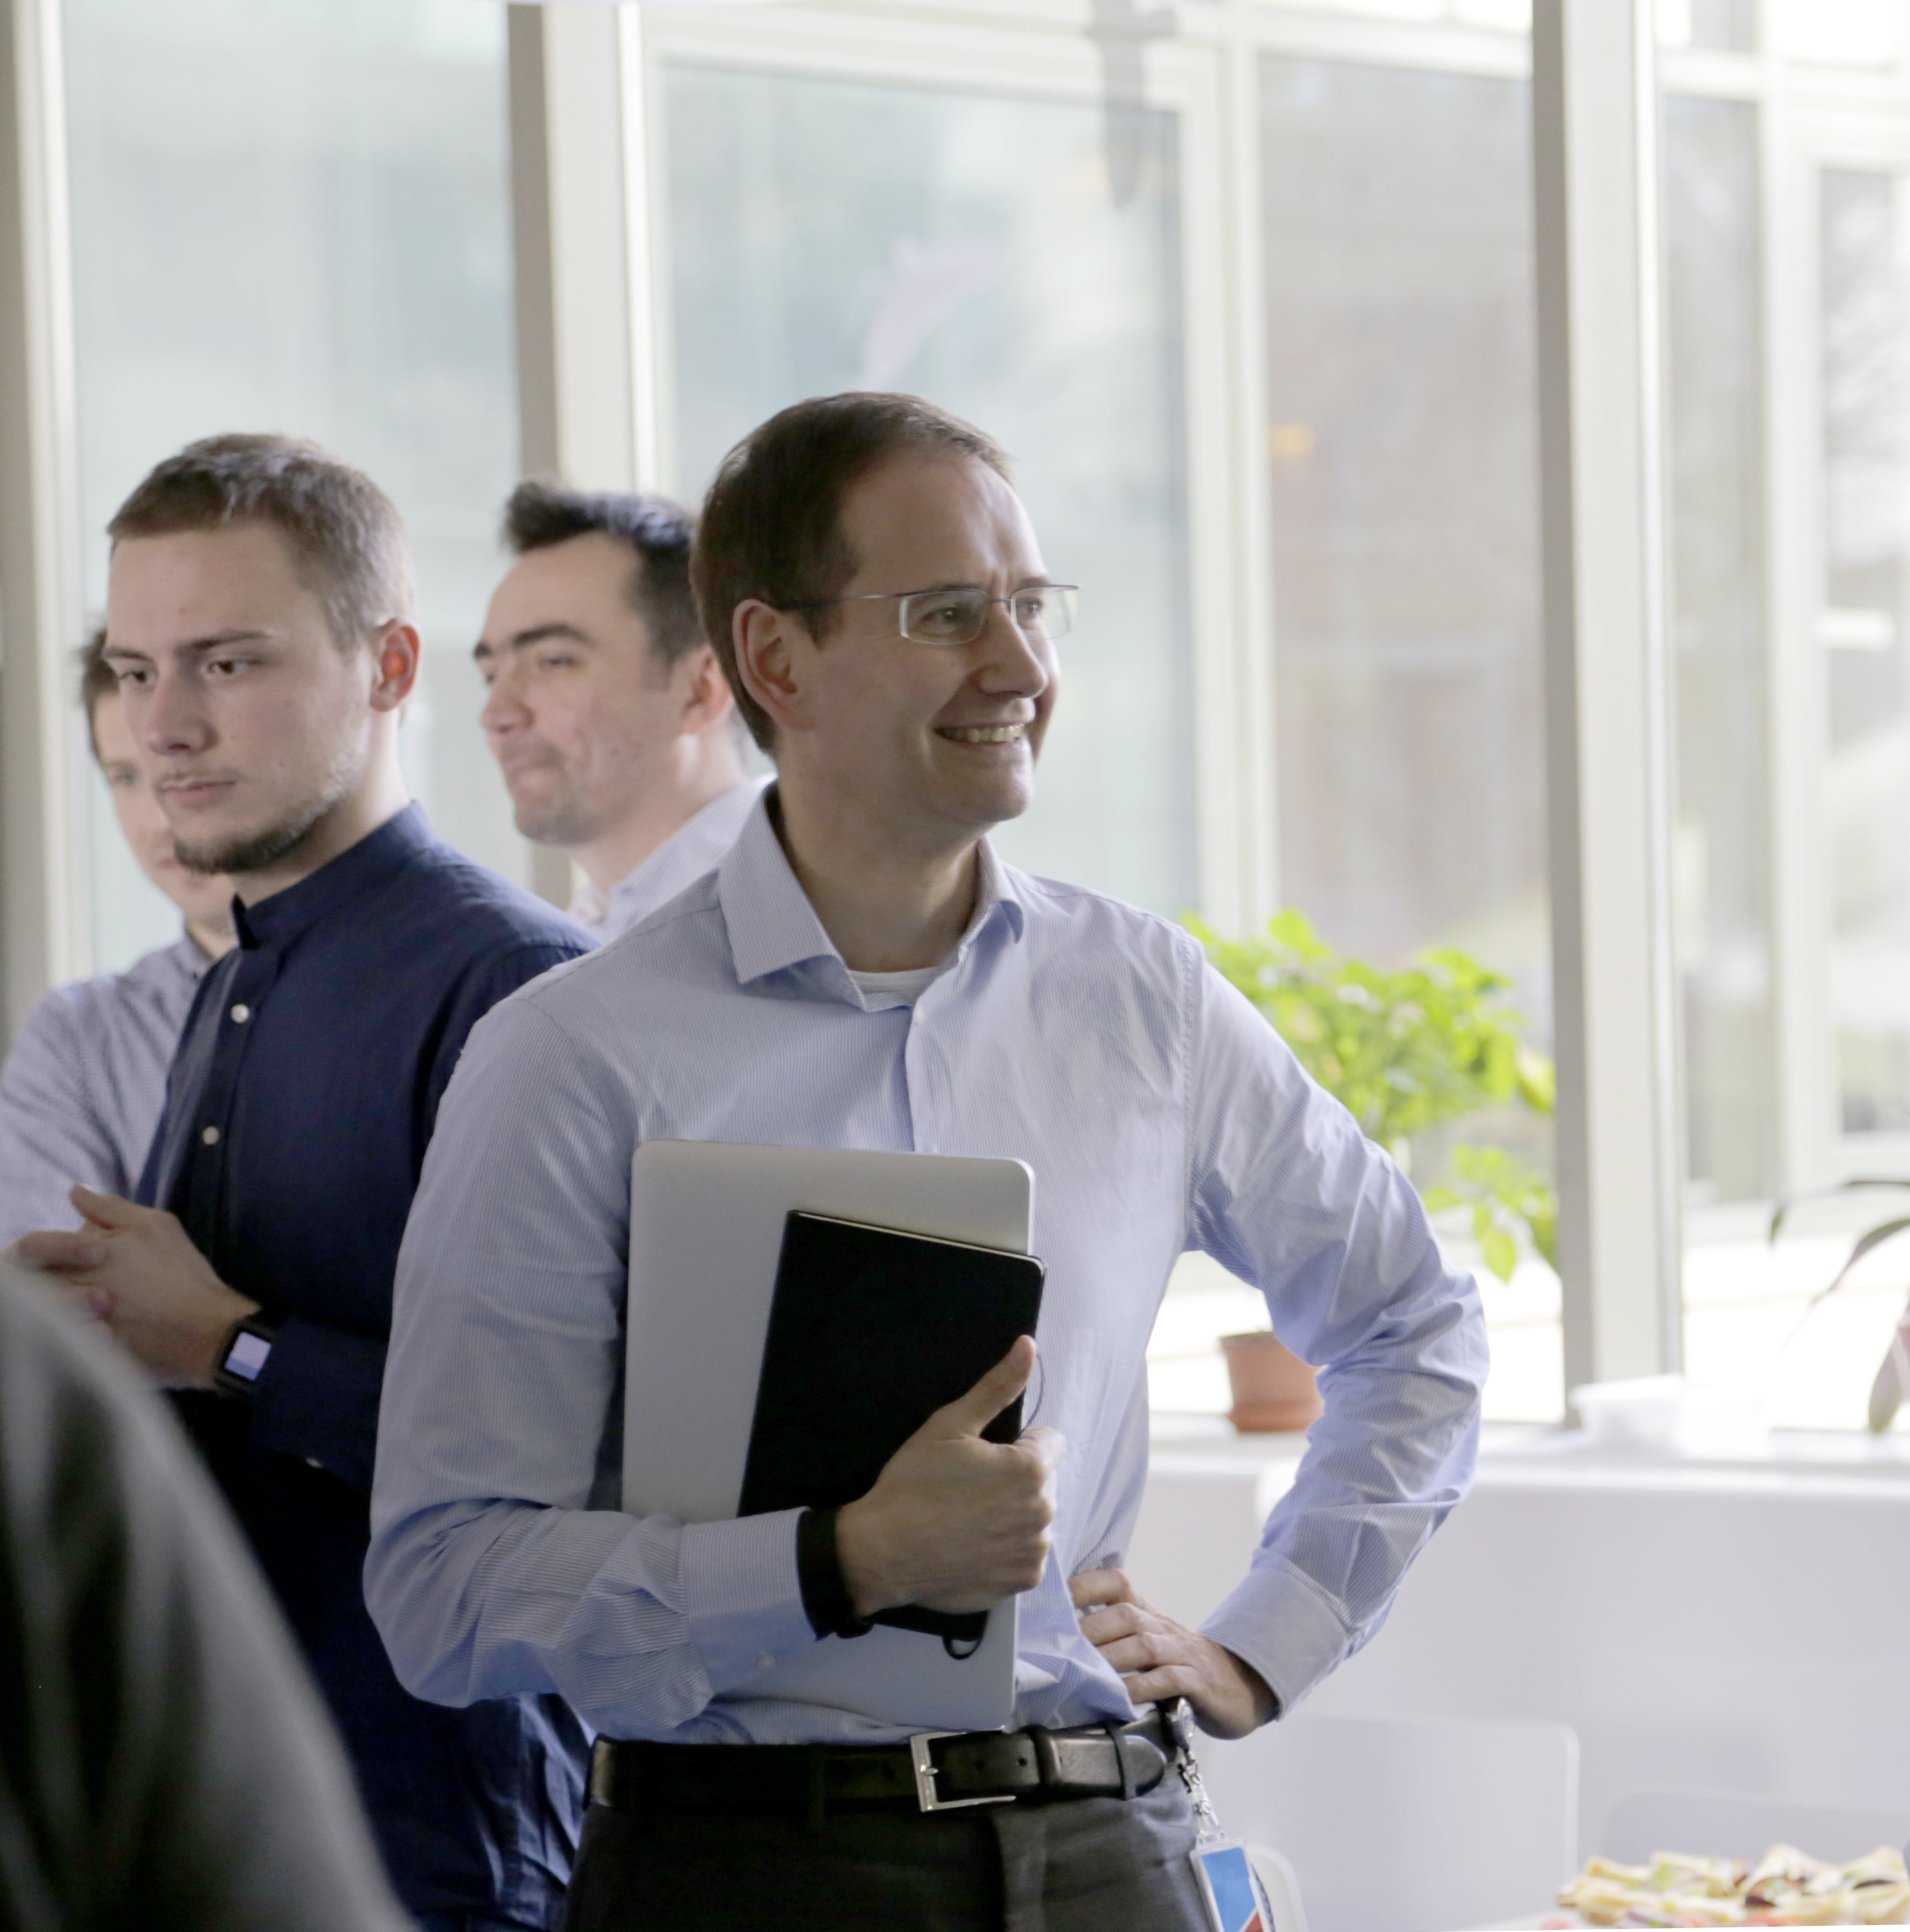 Giles Shrimpton, CEO of NNG, at an NNG Event.